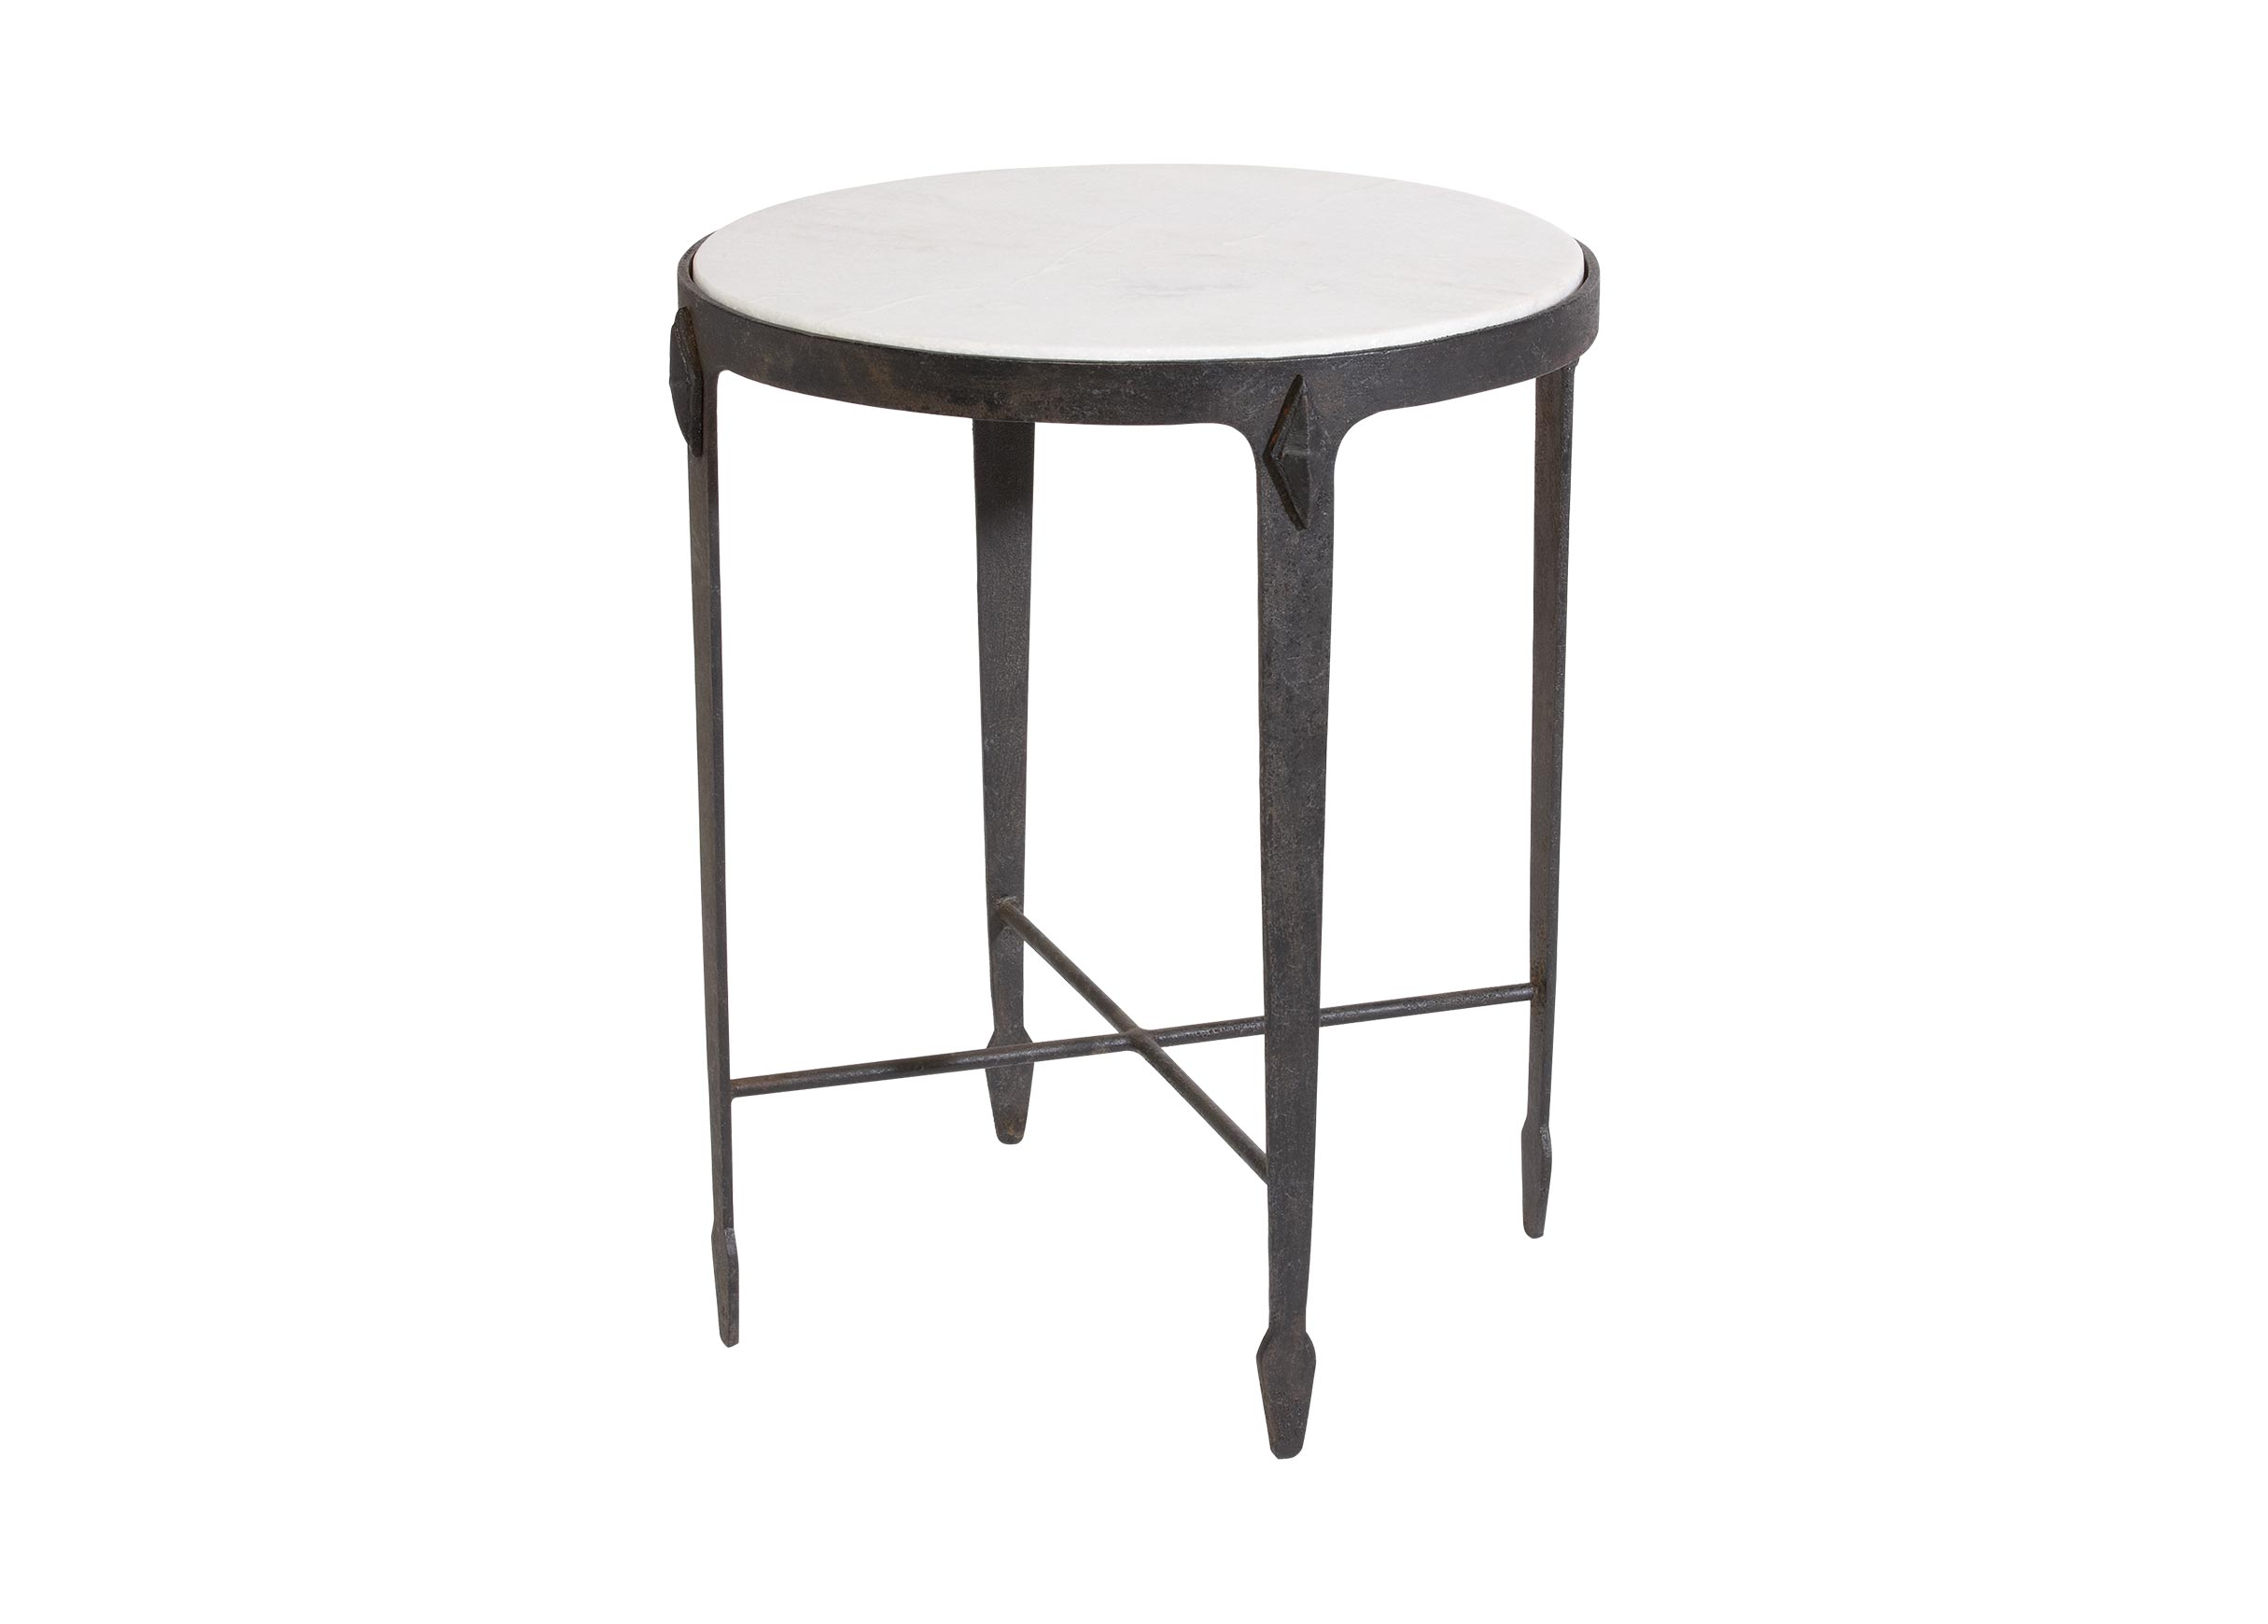 round marble top accent table products bookmarks orange jaca tables ethan allen monarch specialties side cappuccino battery operated lights with remote mid century lamp black drum